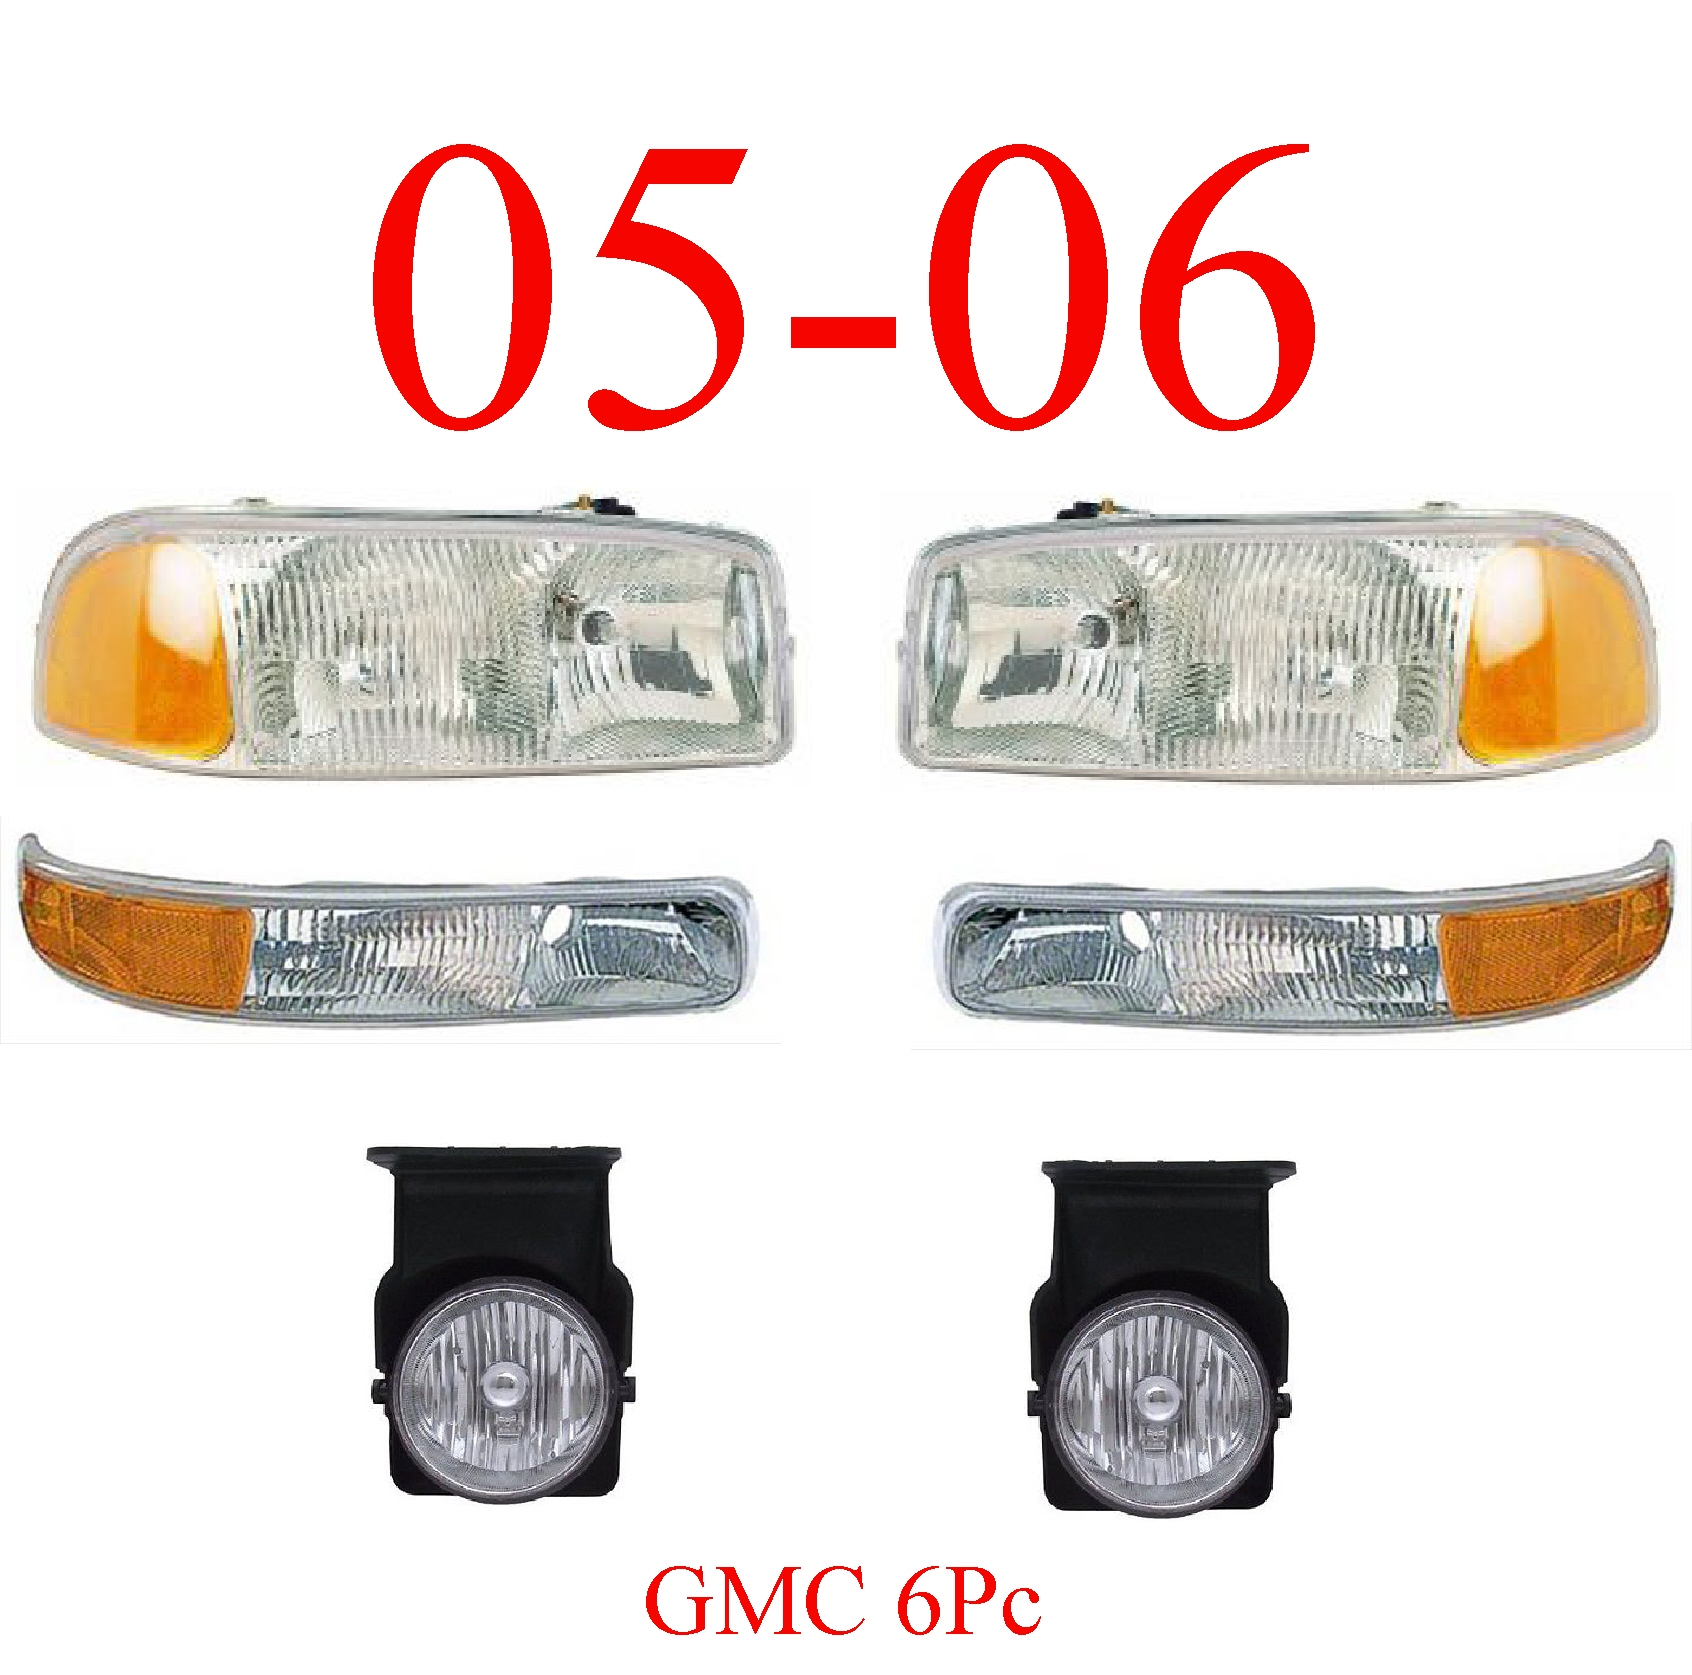 05-06 GMC Truck 6Pc Head, Park & Fog Light